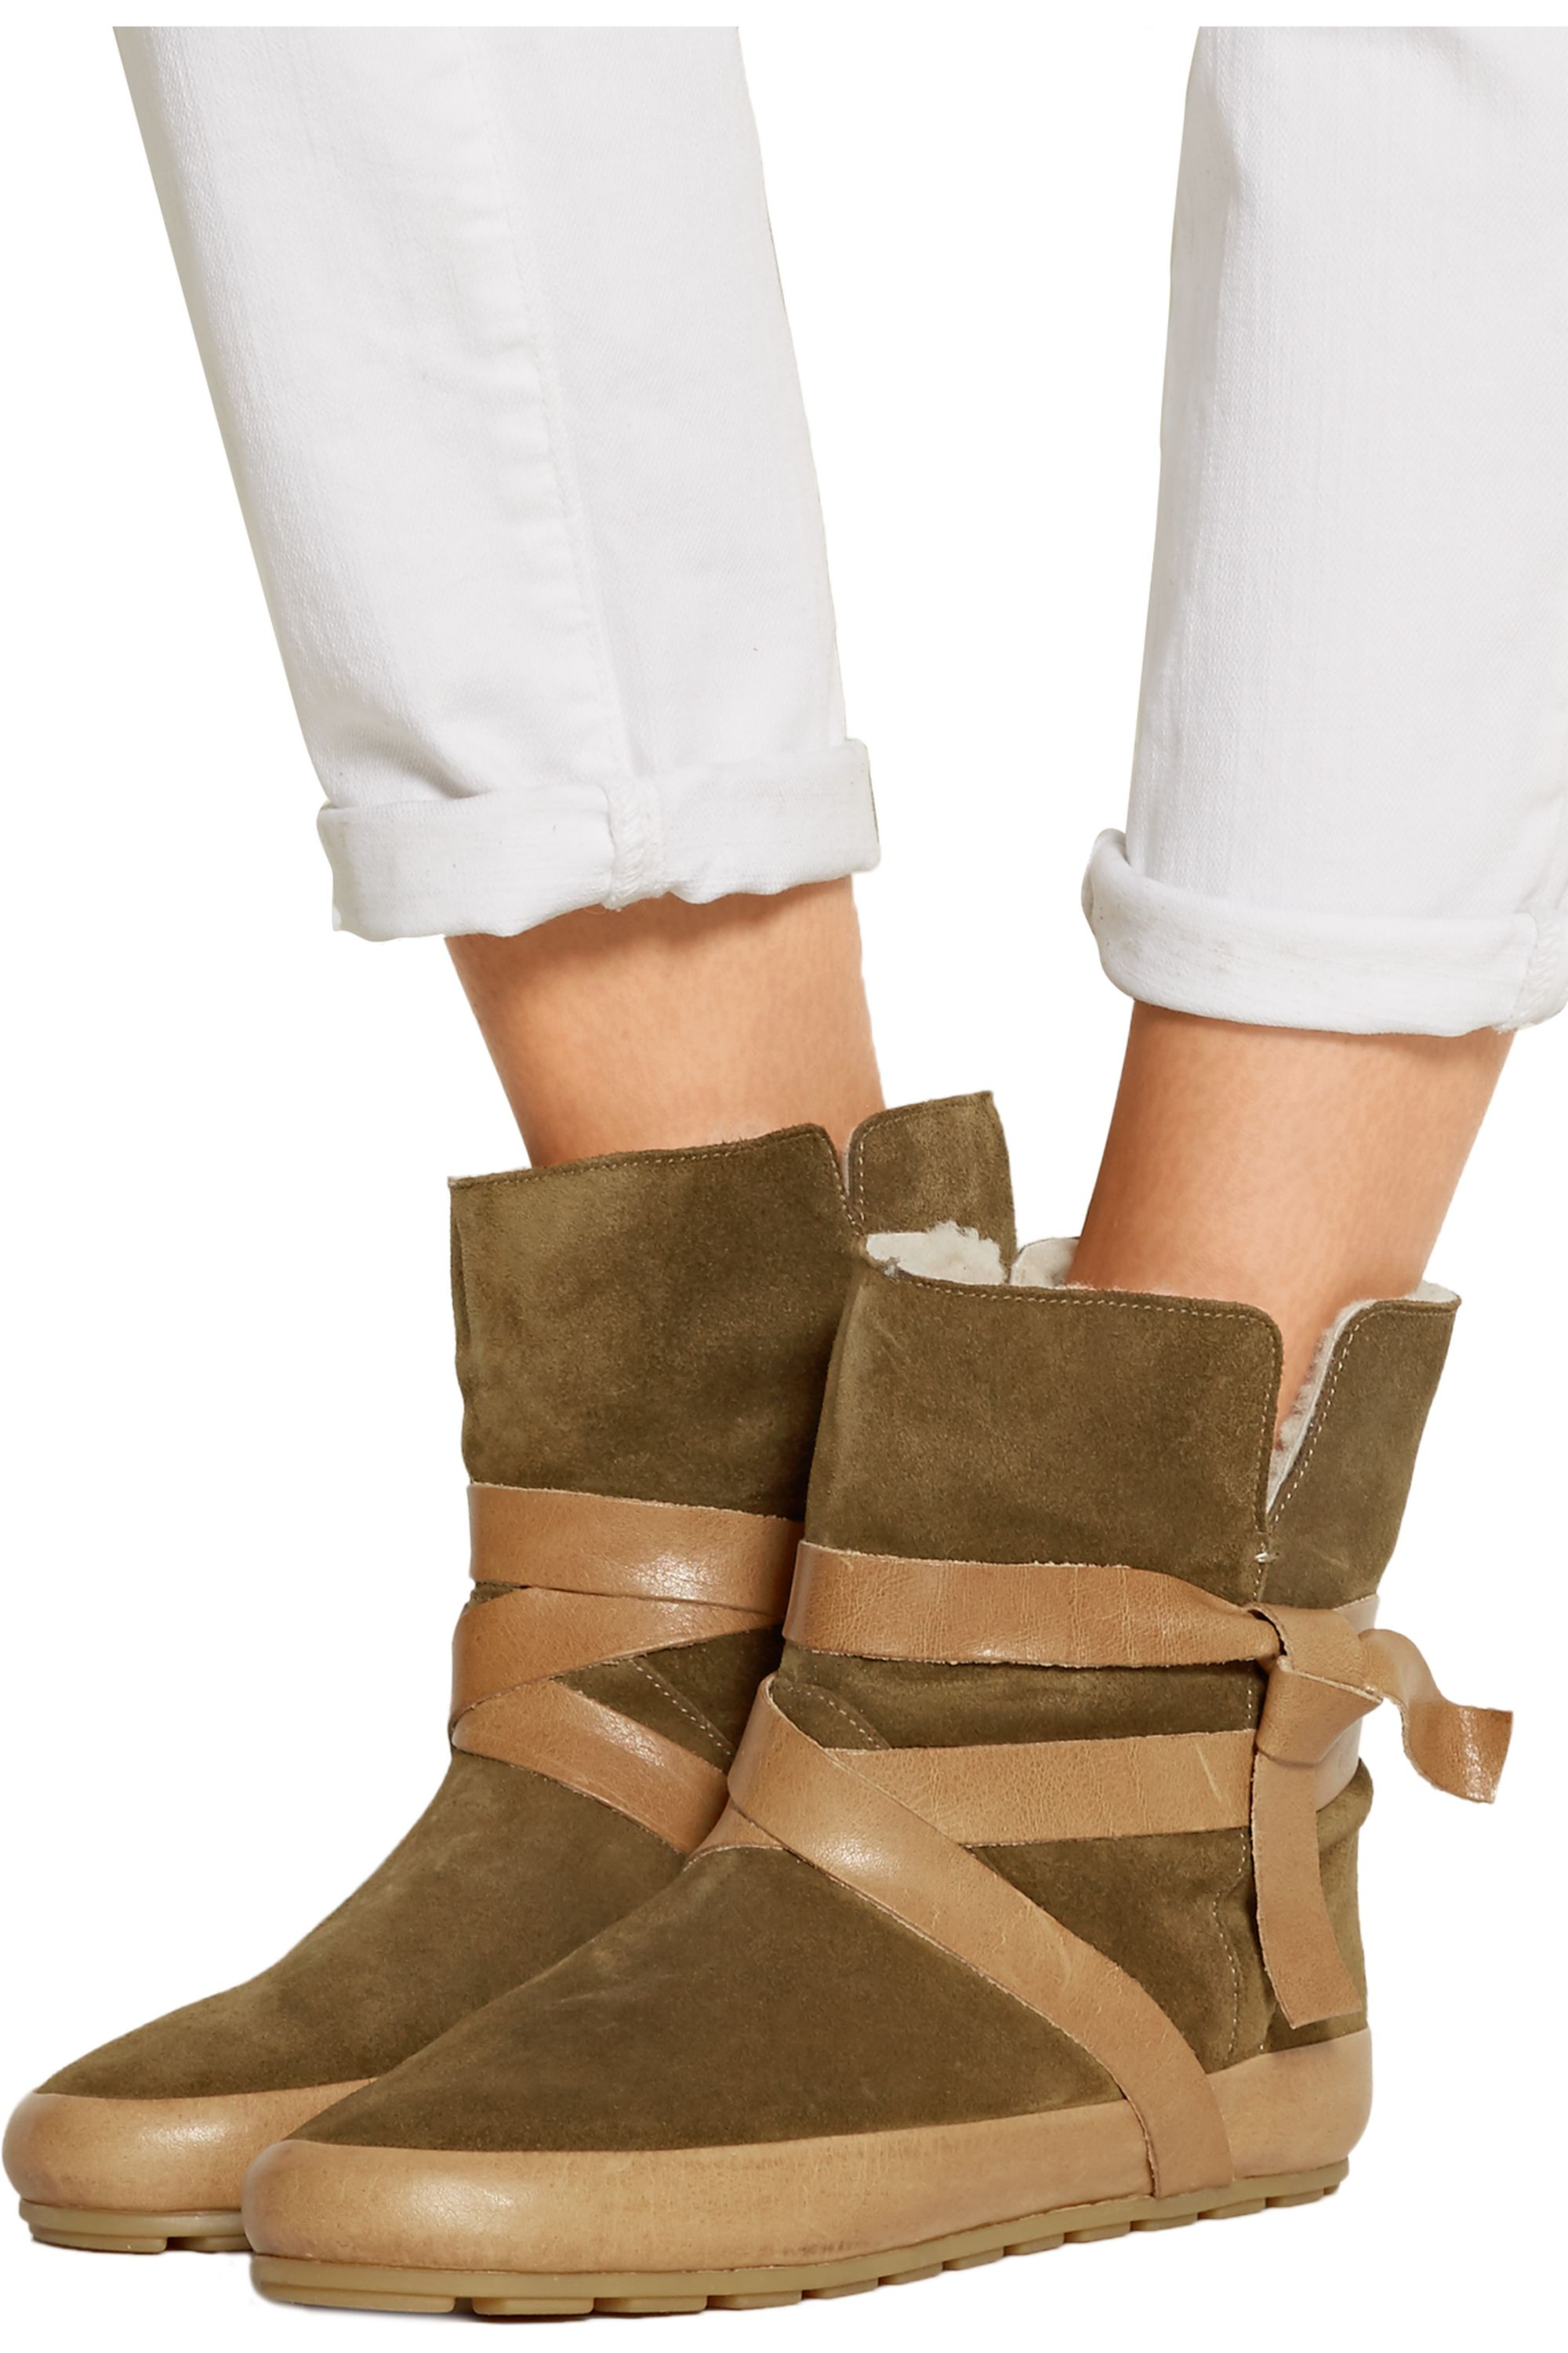 Isabel Marant Nygel leather and shearling ankle boots